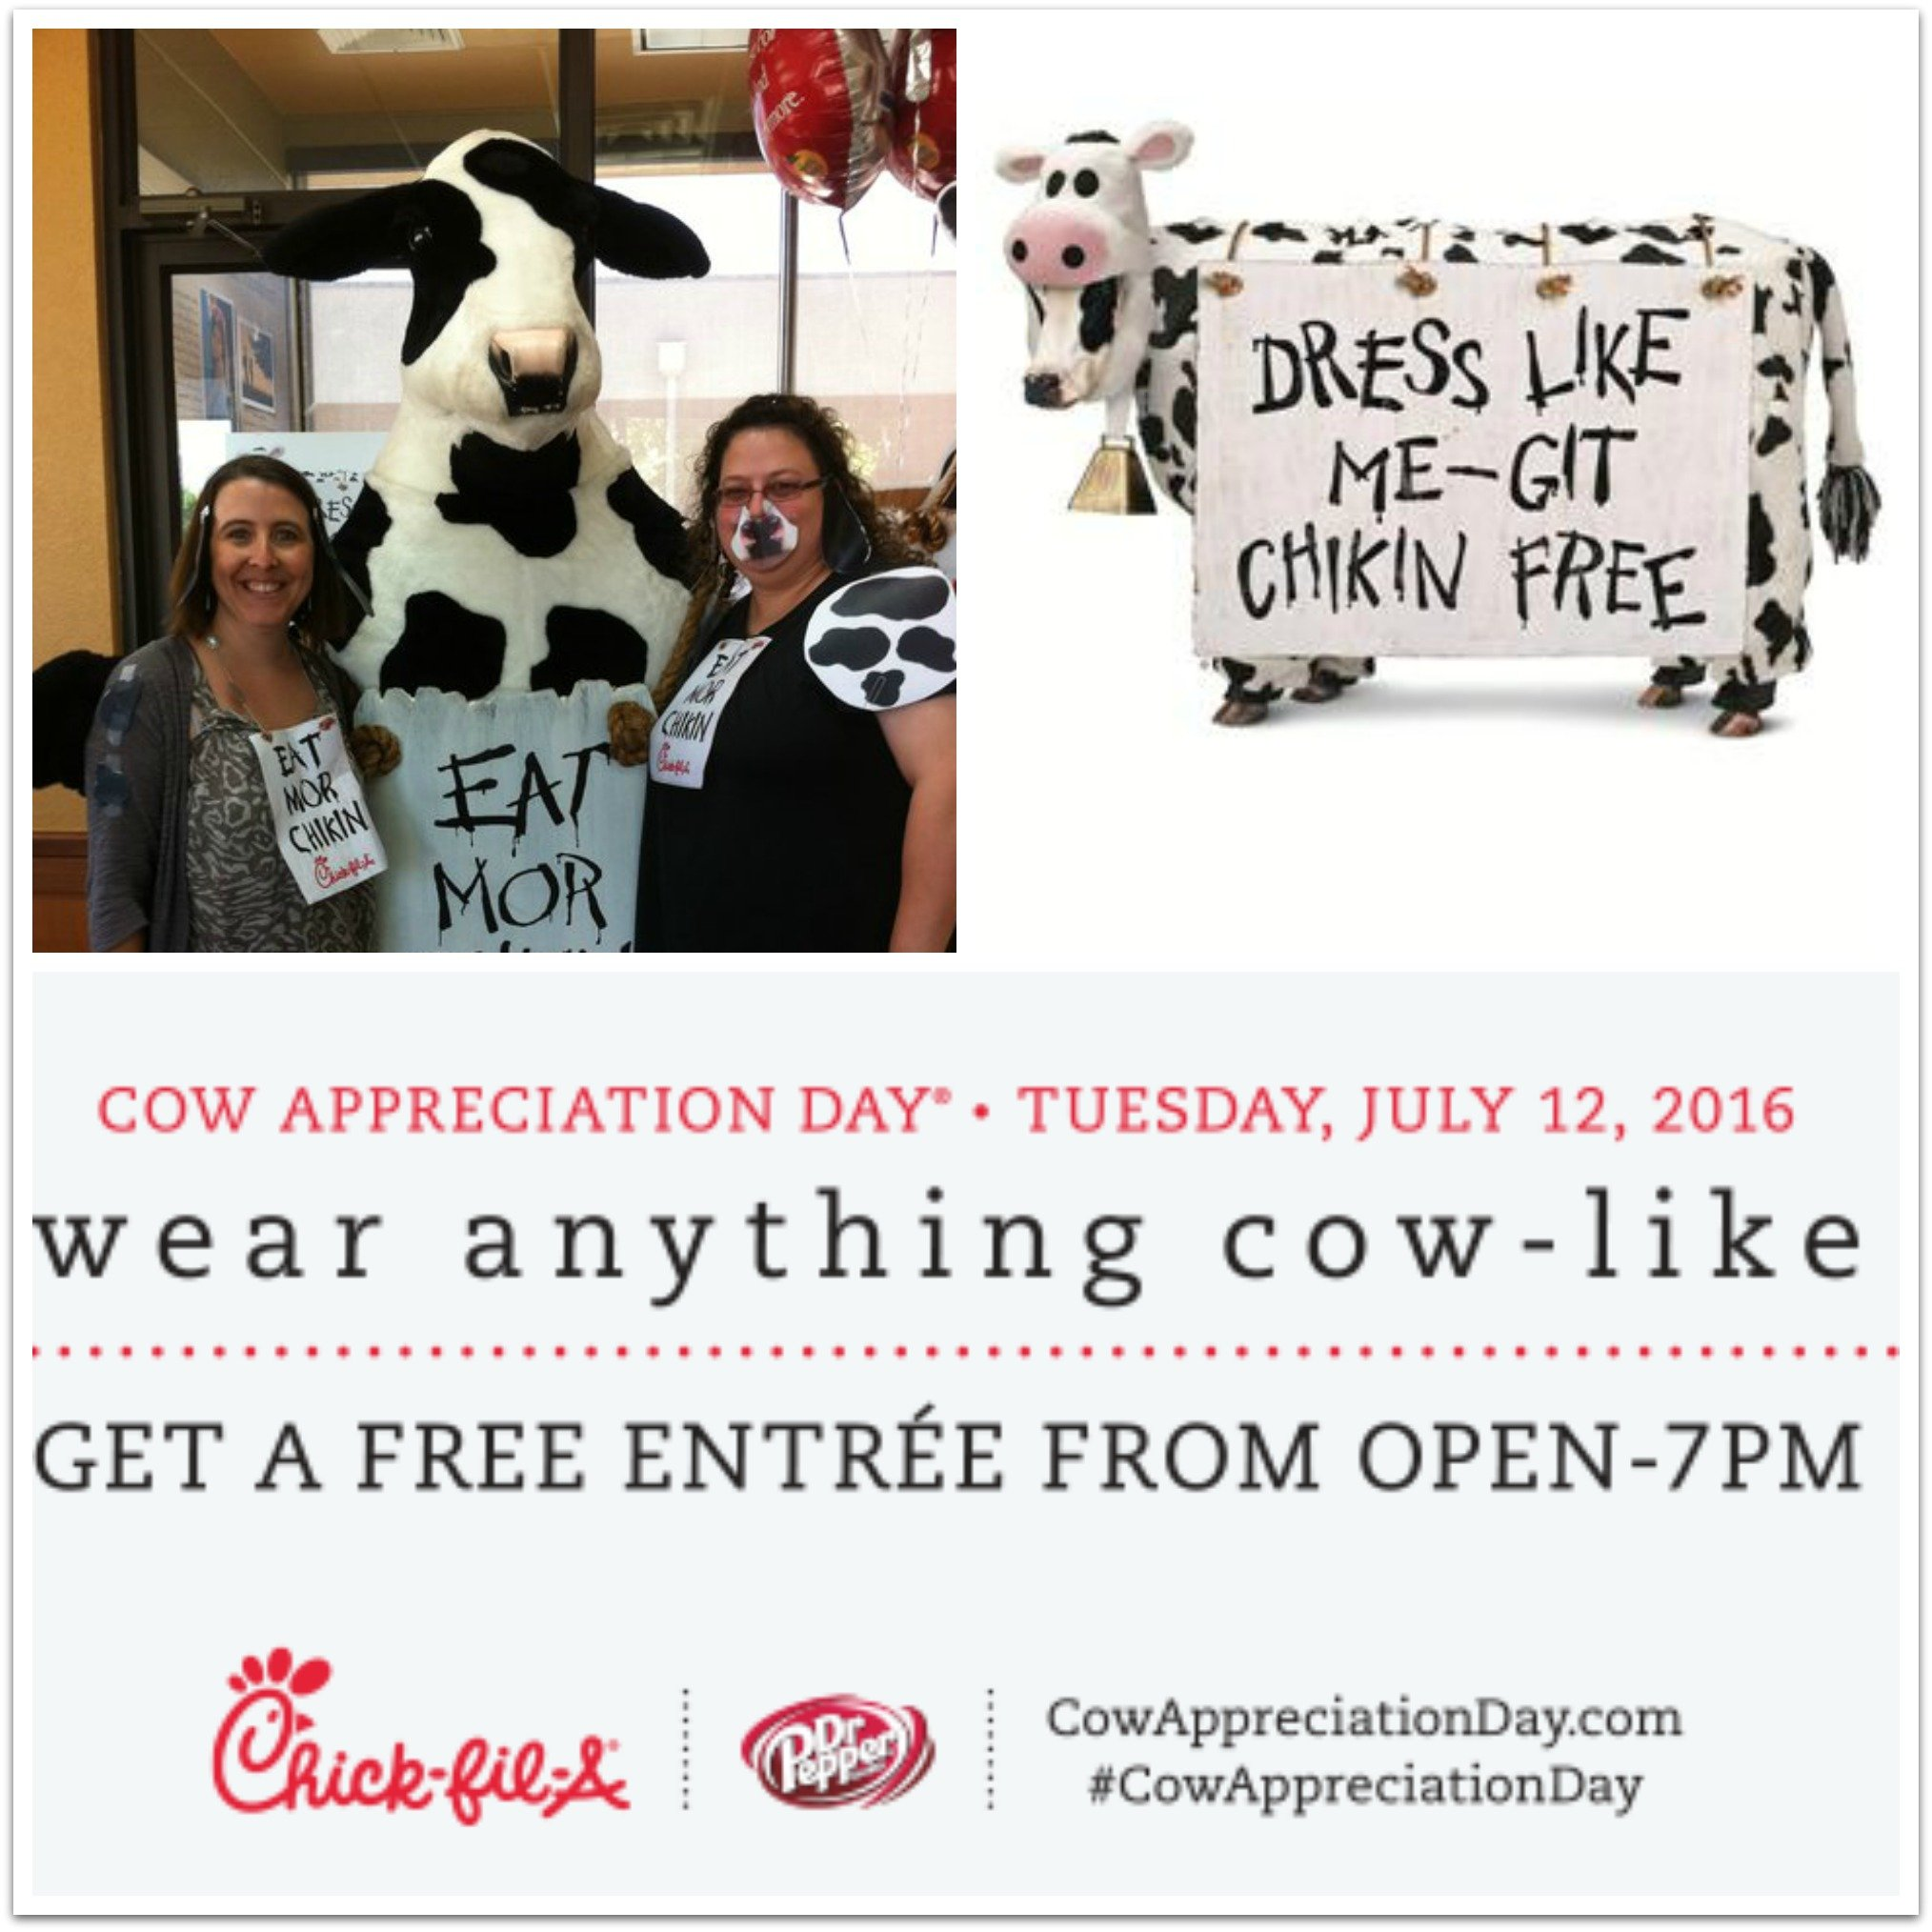 Chick fil-A: Dress Like a Cow July 12- Get a FREE Entree!